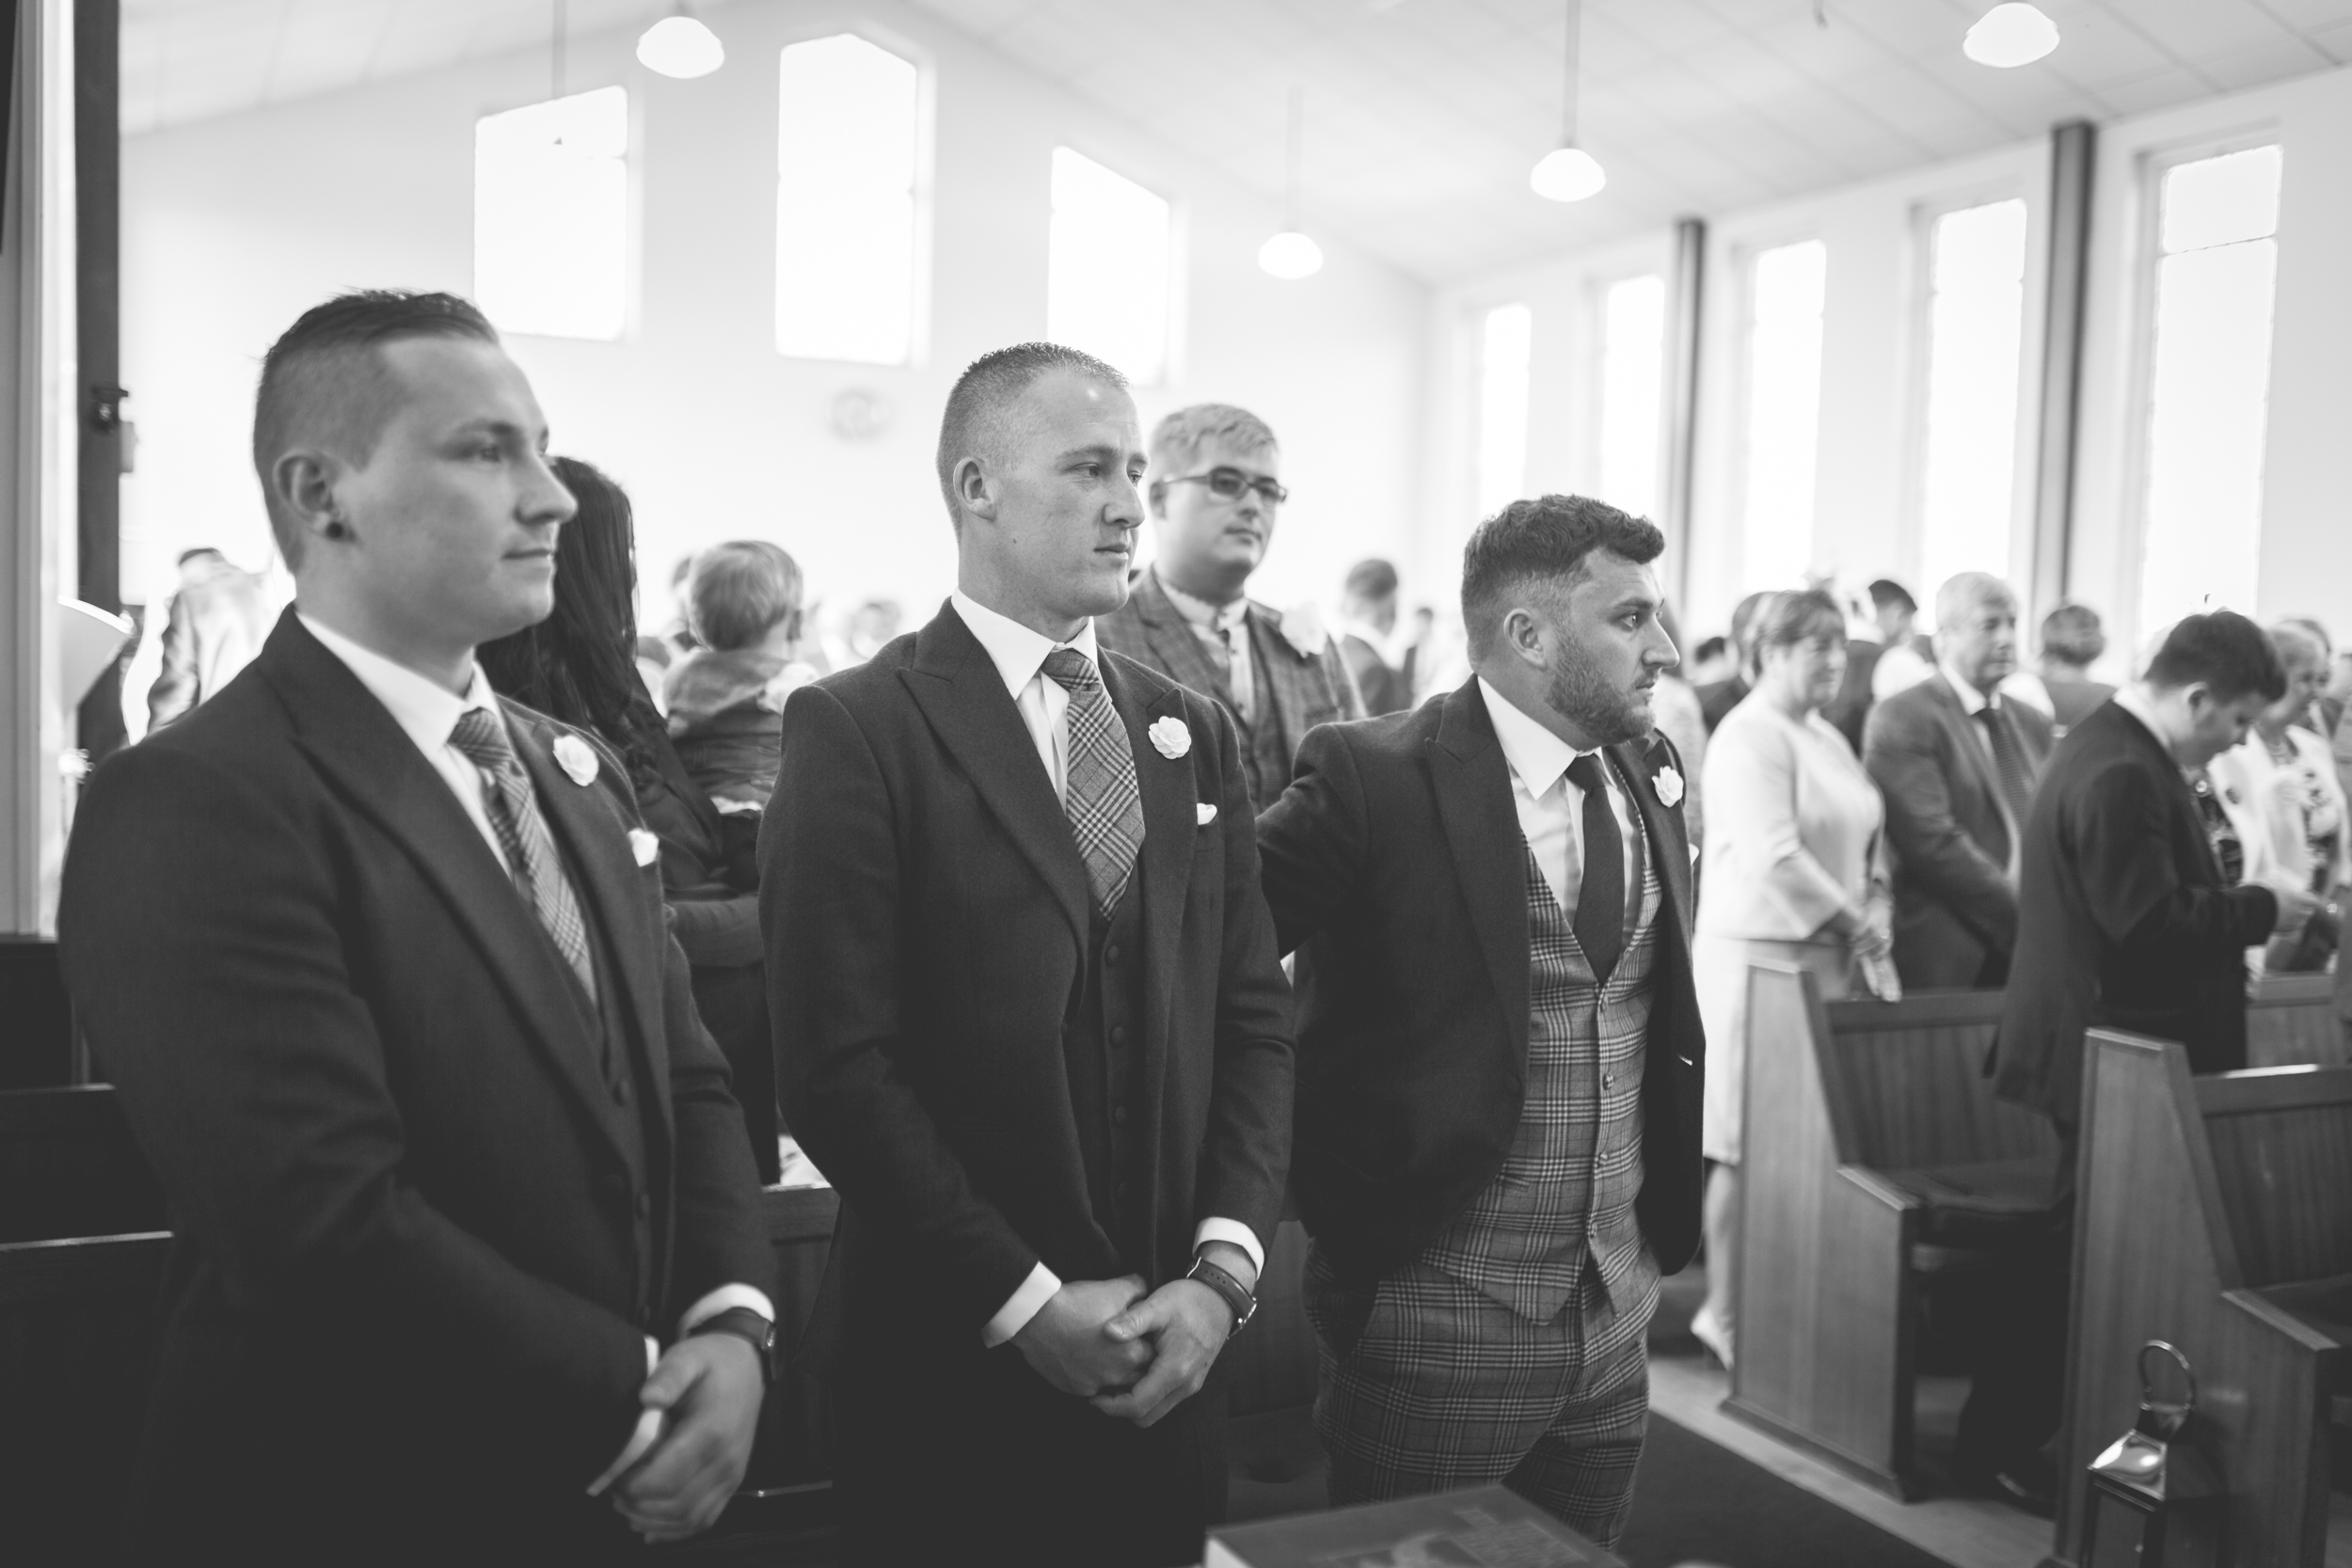 Brian McEwan | Northern Ireland Wedding Photographer | Rebecca & Michael | Ceremony-9.jpg